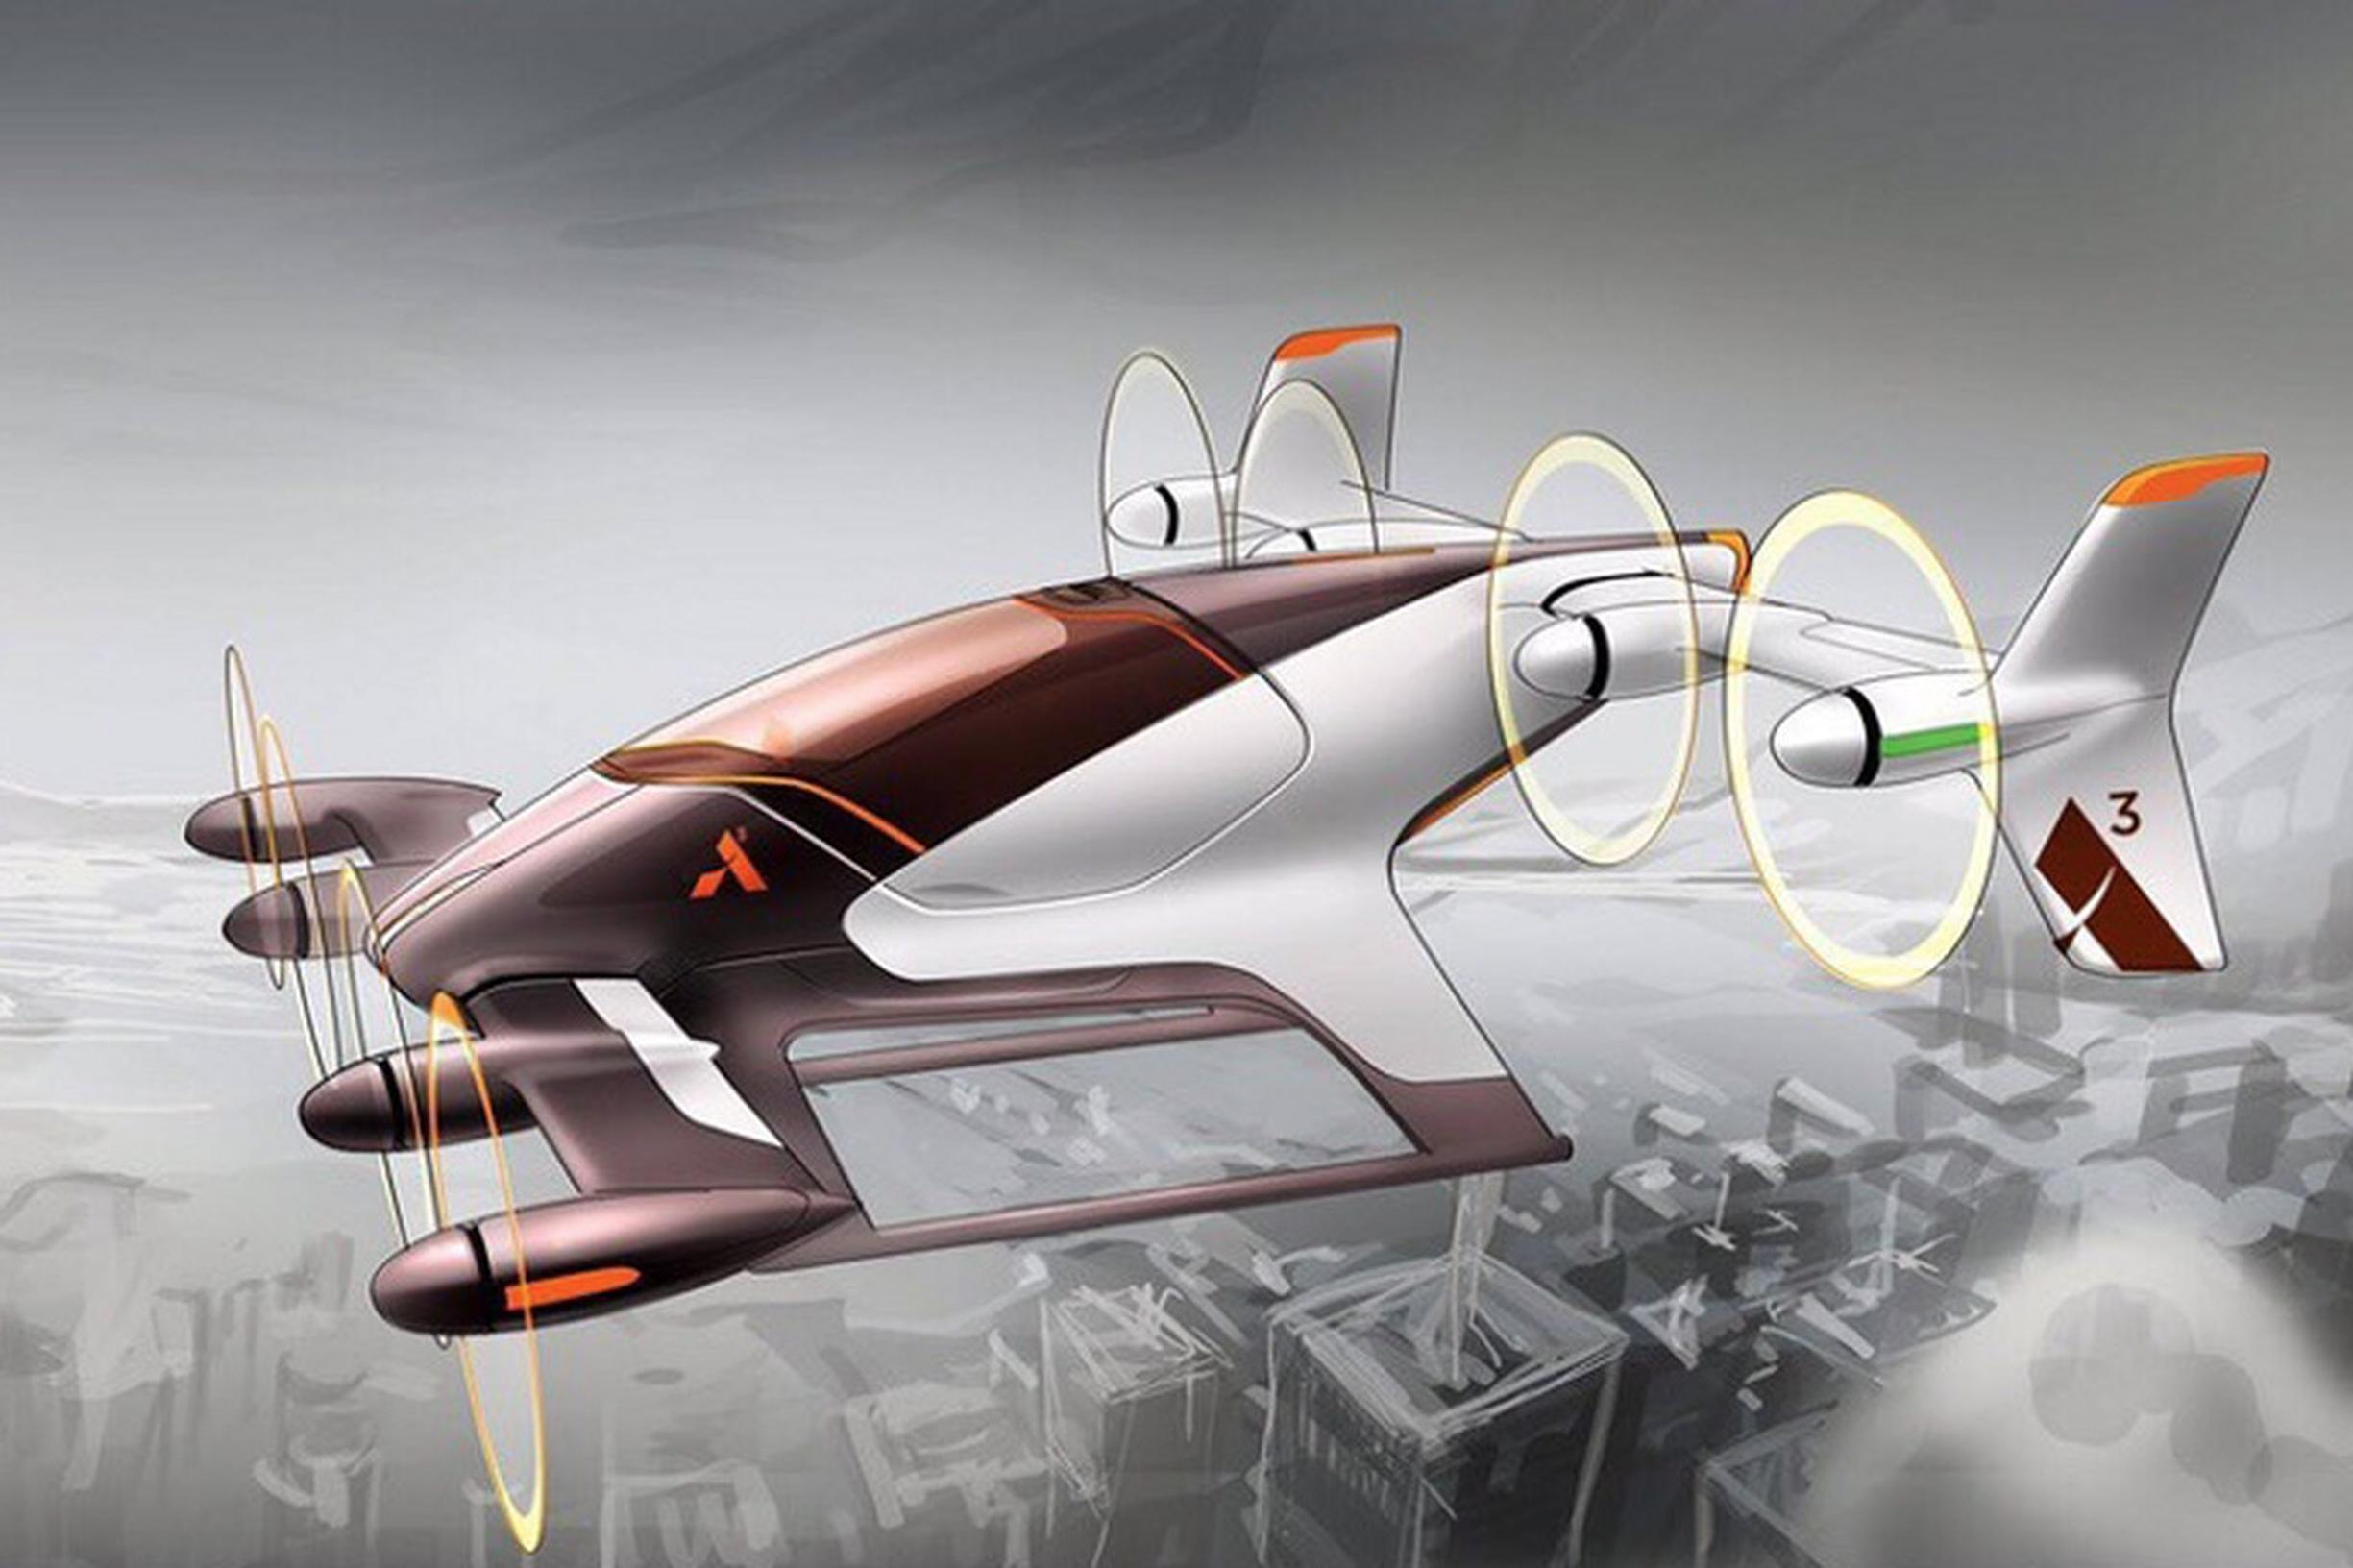 But will it take off? The flying taxi concept is the objective of more than one major enterprise